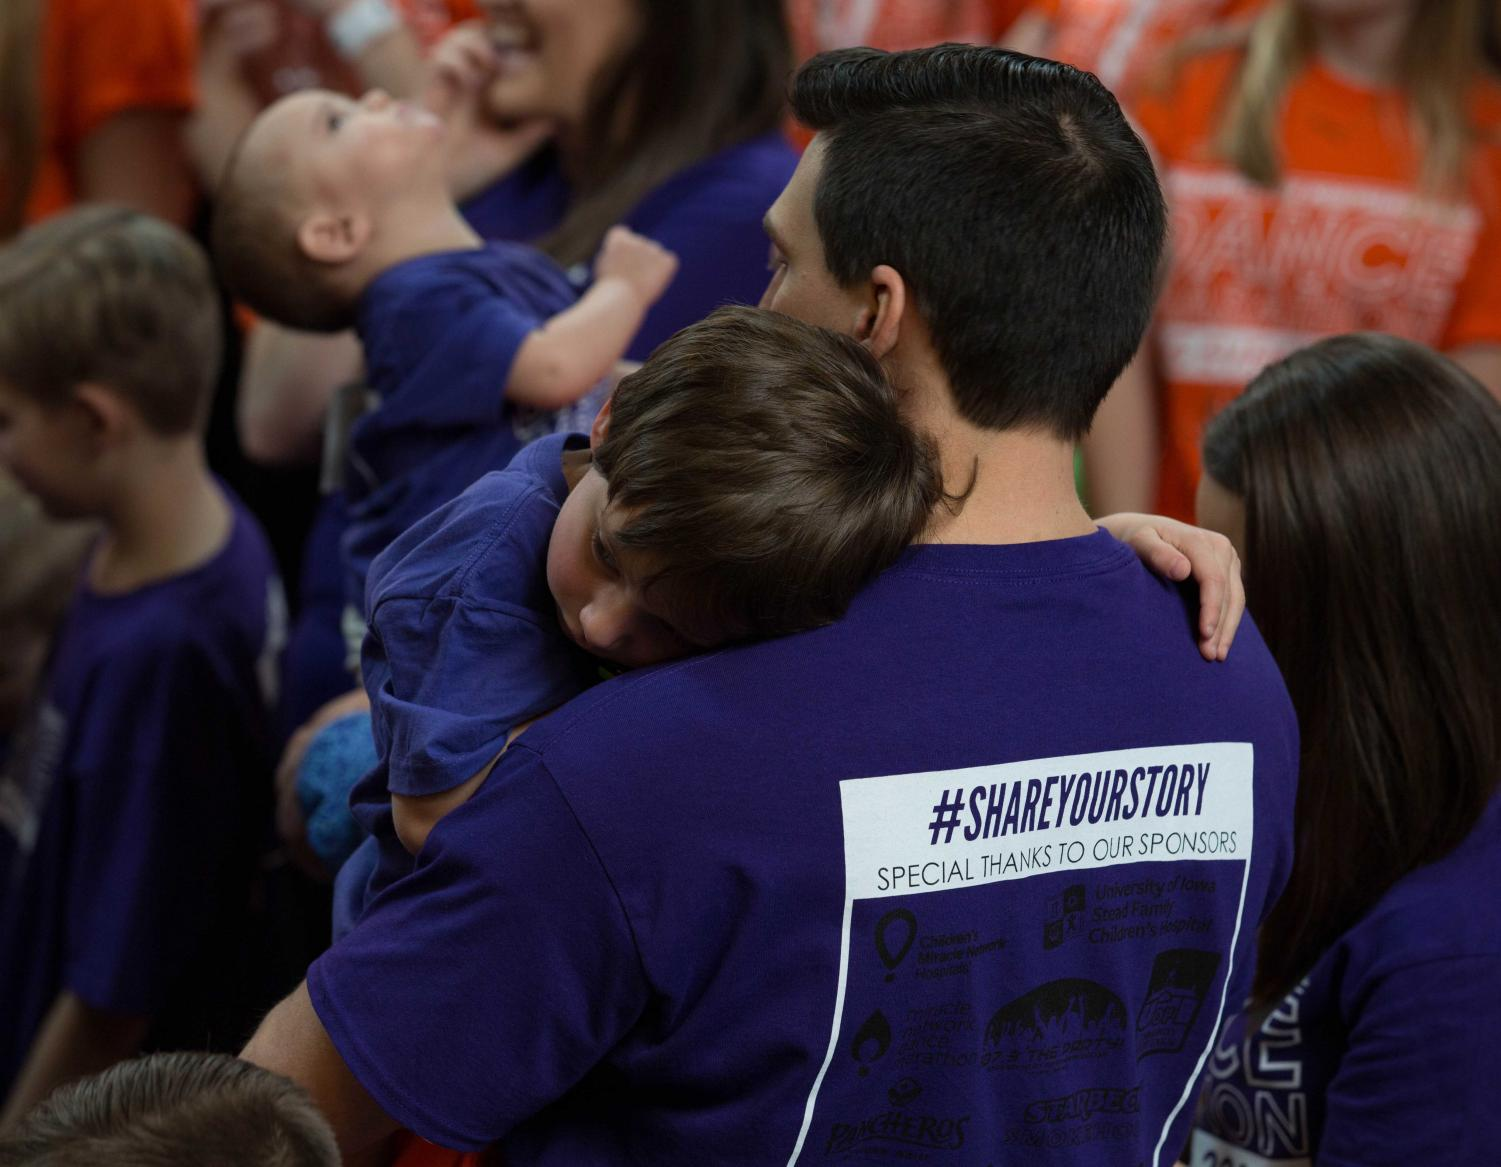 The UNI Dance Marathon, held March 2, surpassed its goal of $620,000 by a margin of over $60,000.